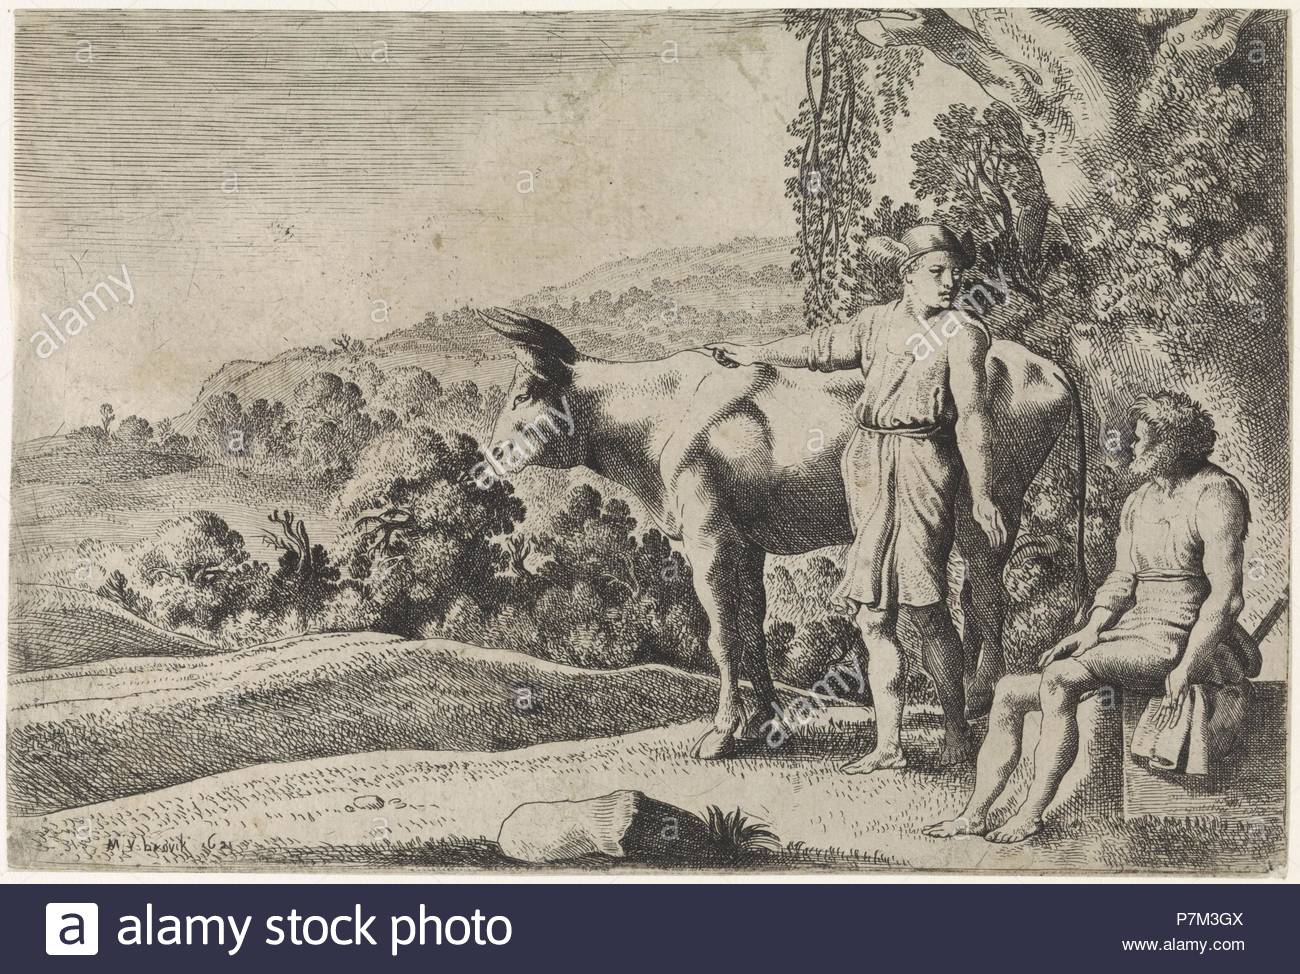 Mercury is pointing to the cow Io and looks at Argus, which sits on a stone block, scene from Ovid's Metamorphoses, Met. I, 679-688, print maker: Moyses van Wtenbrouck (mentioned on object), Dating 1621. - Stock Image